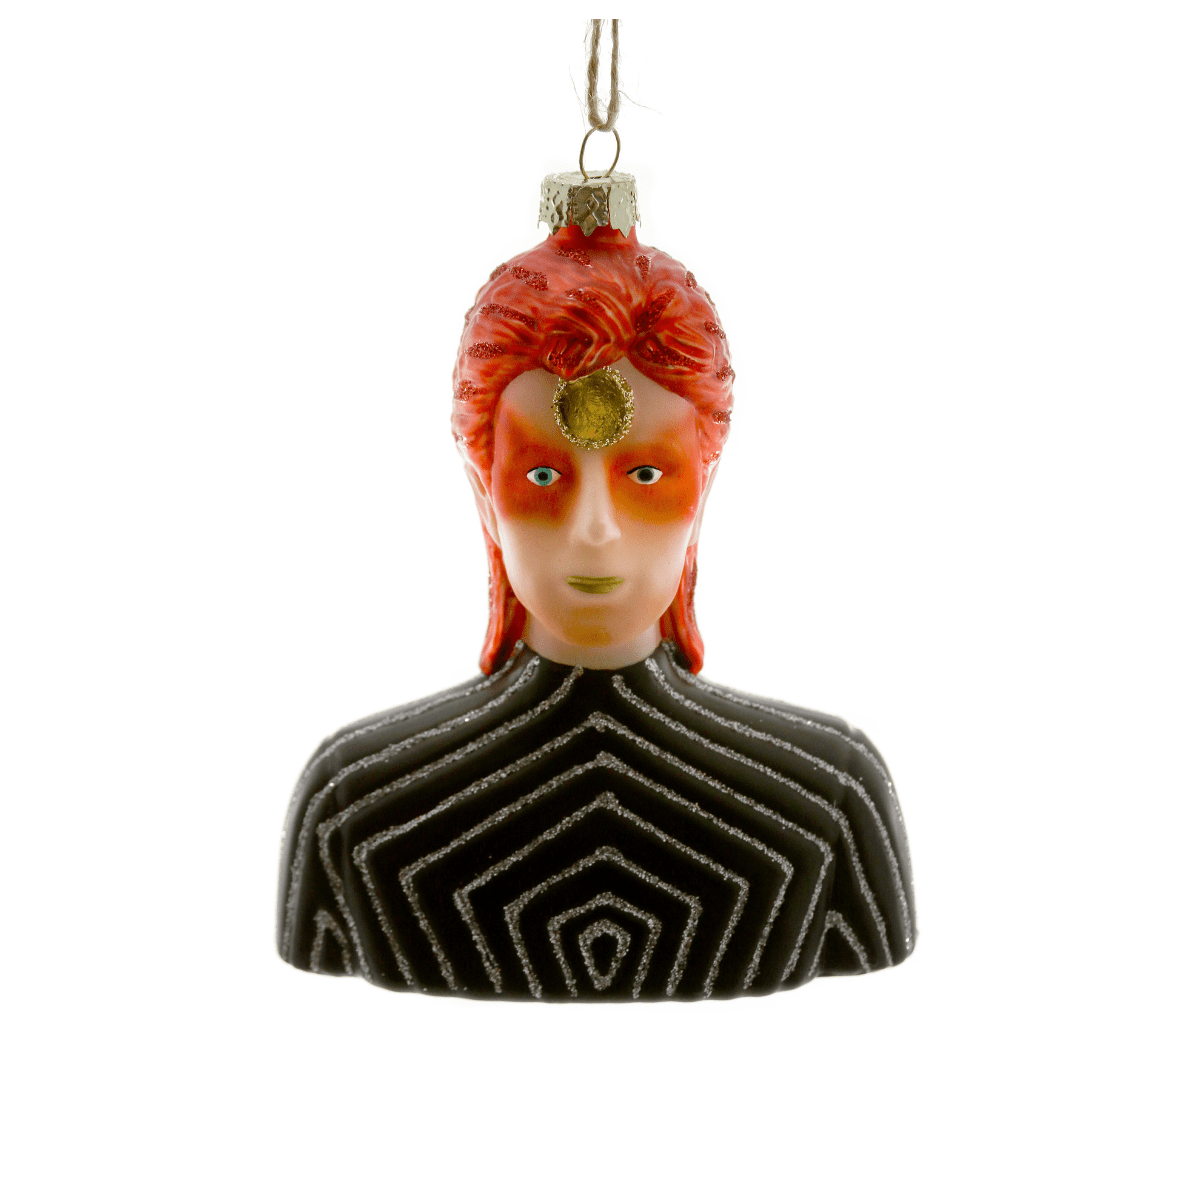 Ziggy Christmas 2020 Ziggy Stardust Christmas Tree Decoration by Cody Foster from The